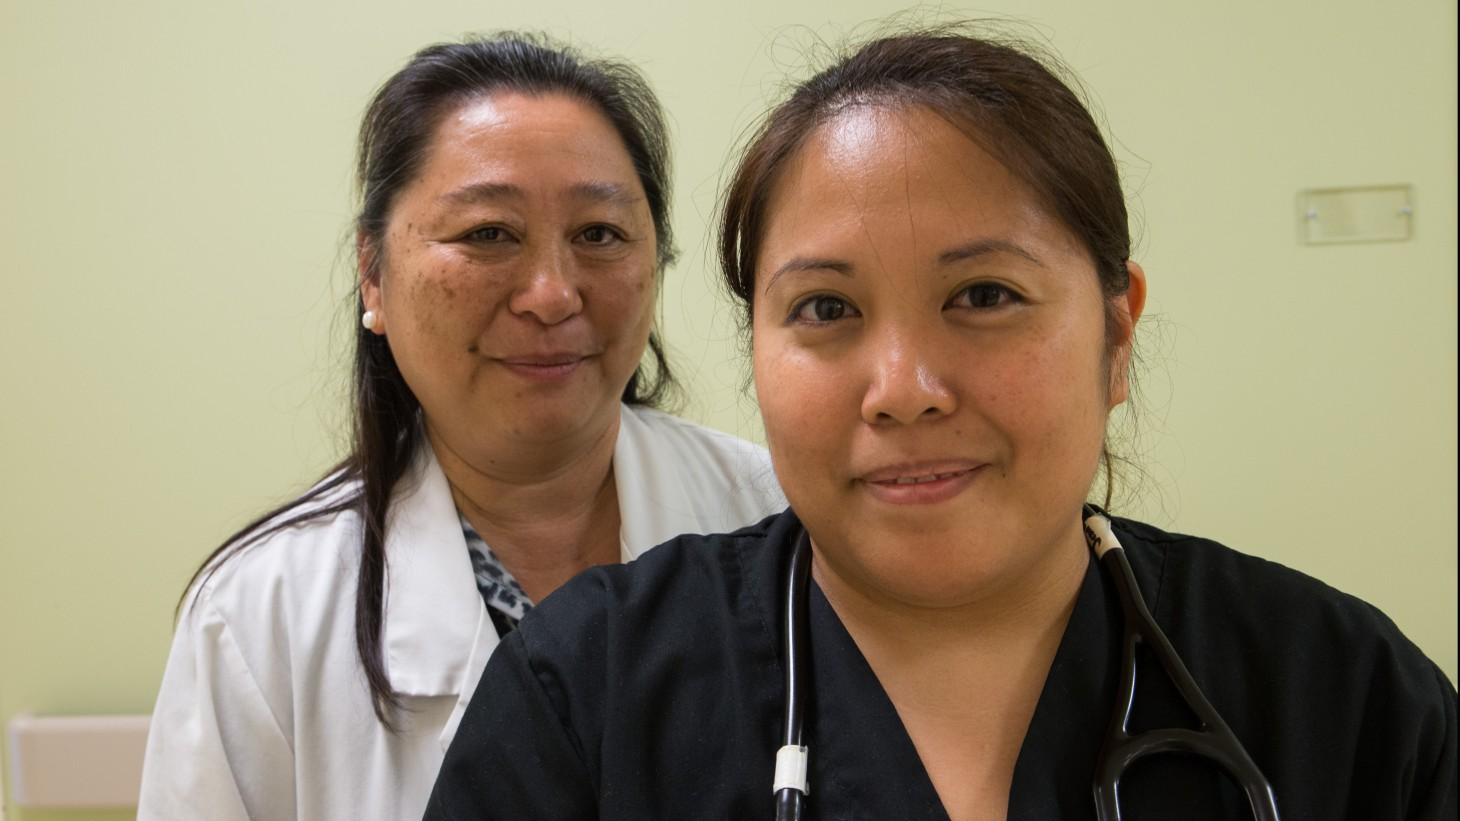 Manlee Velasco, RN, and Jenalyn Andres, RN